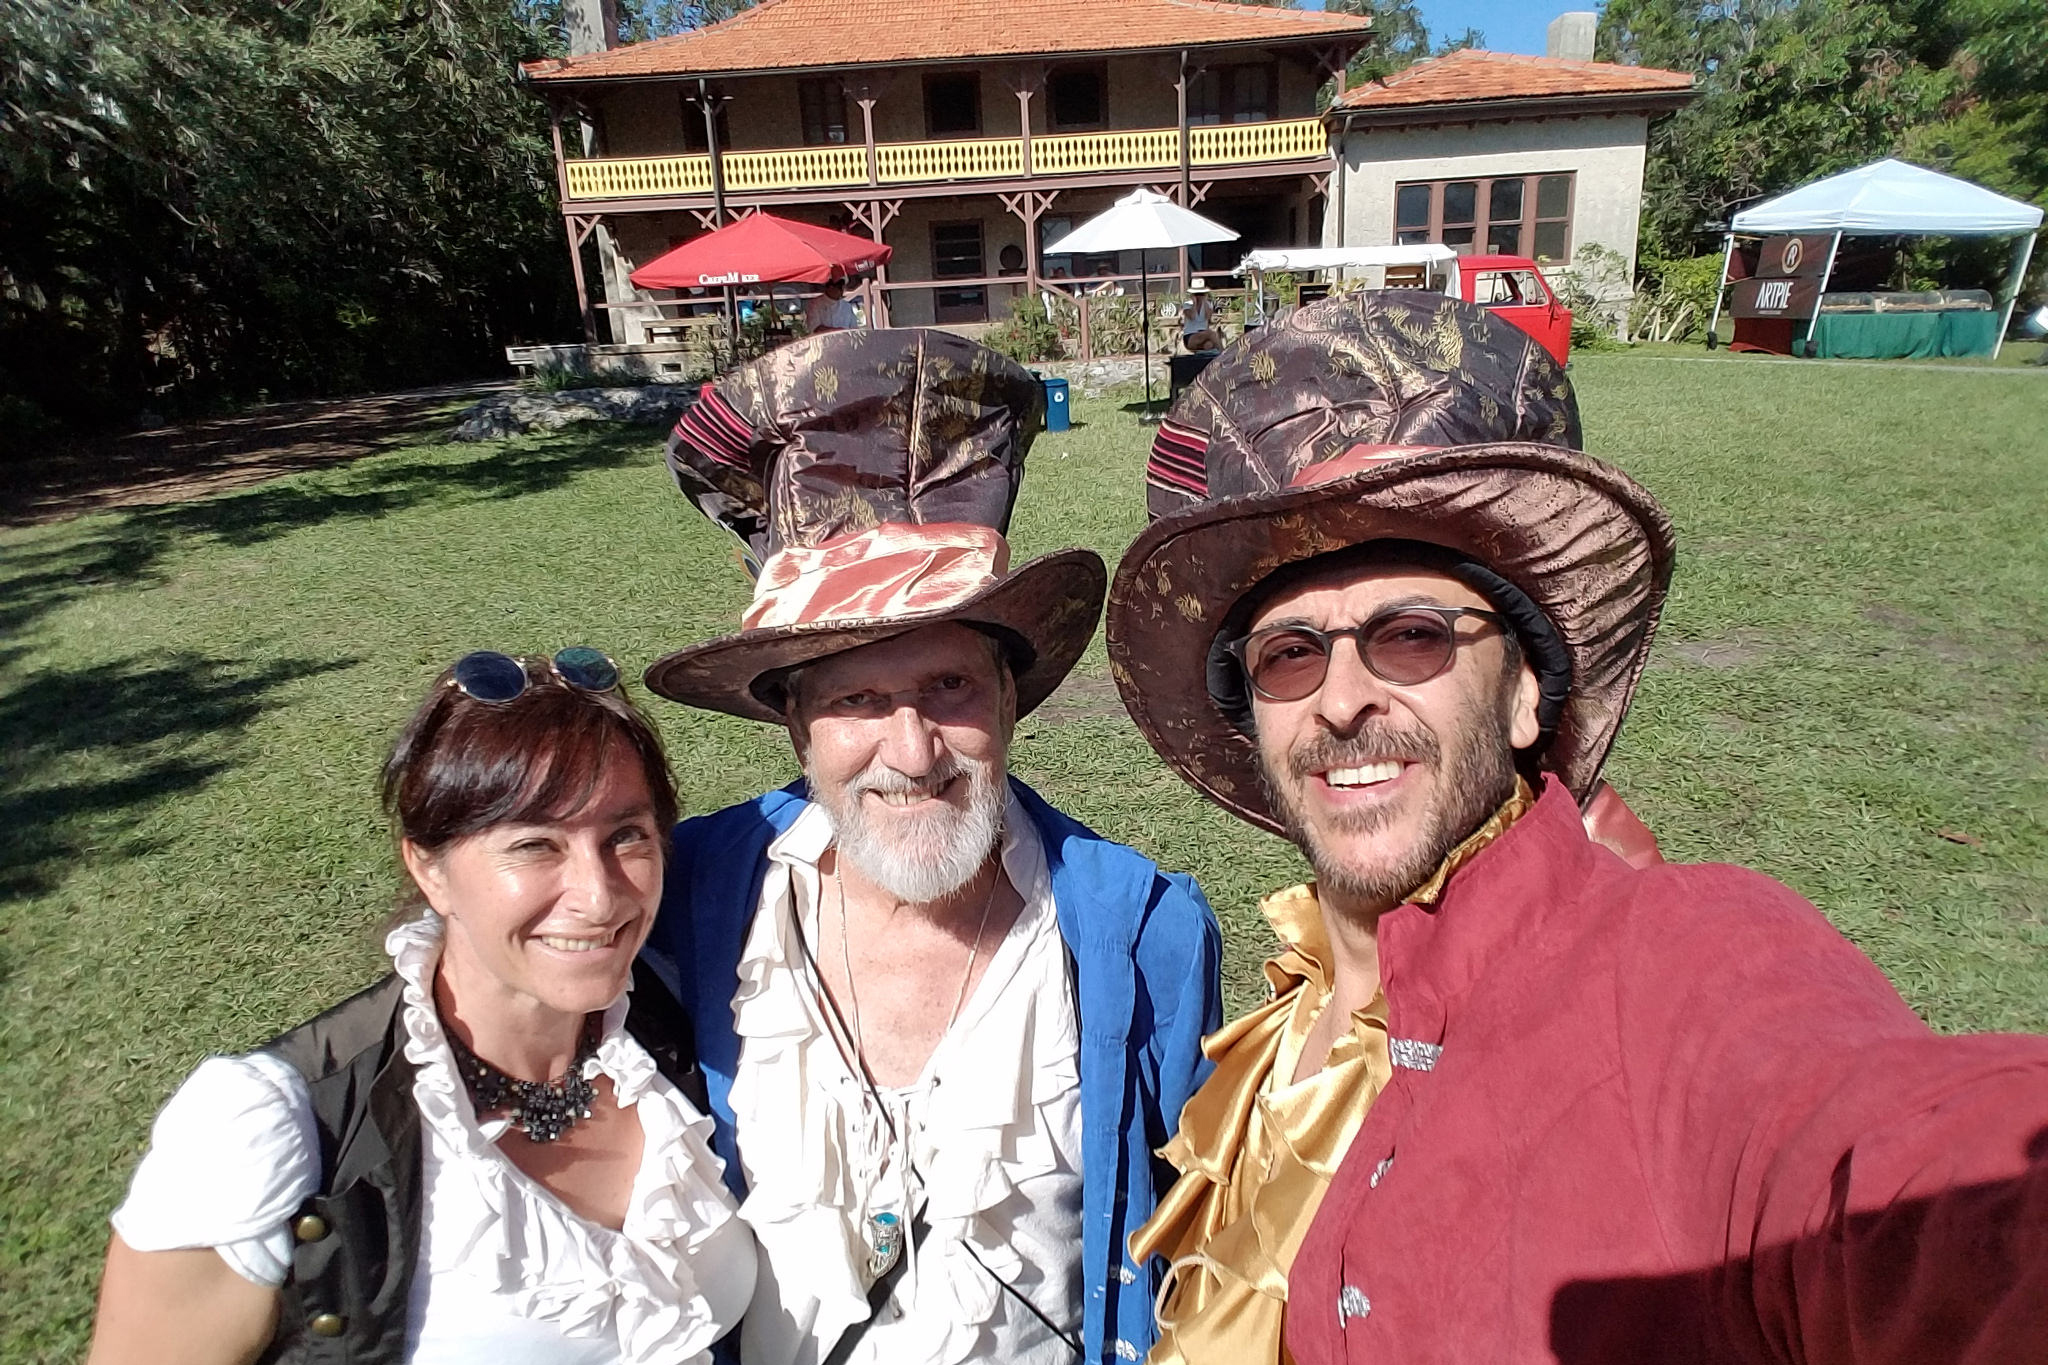 Mad Hatter Arts Festival at the Barnacle in Miami